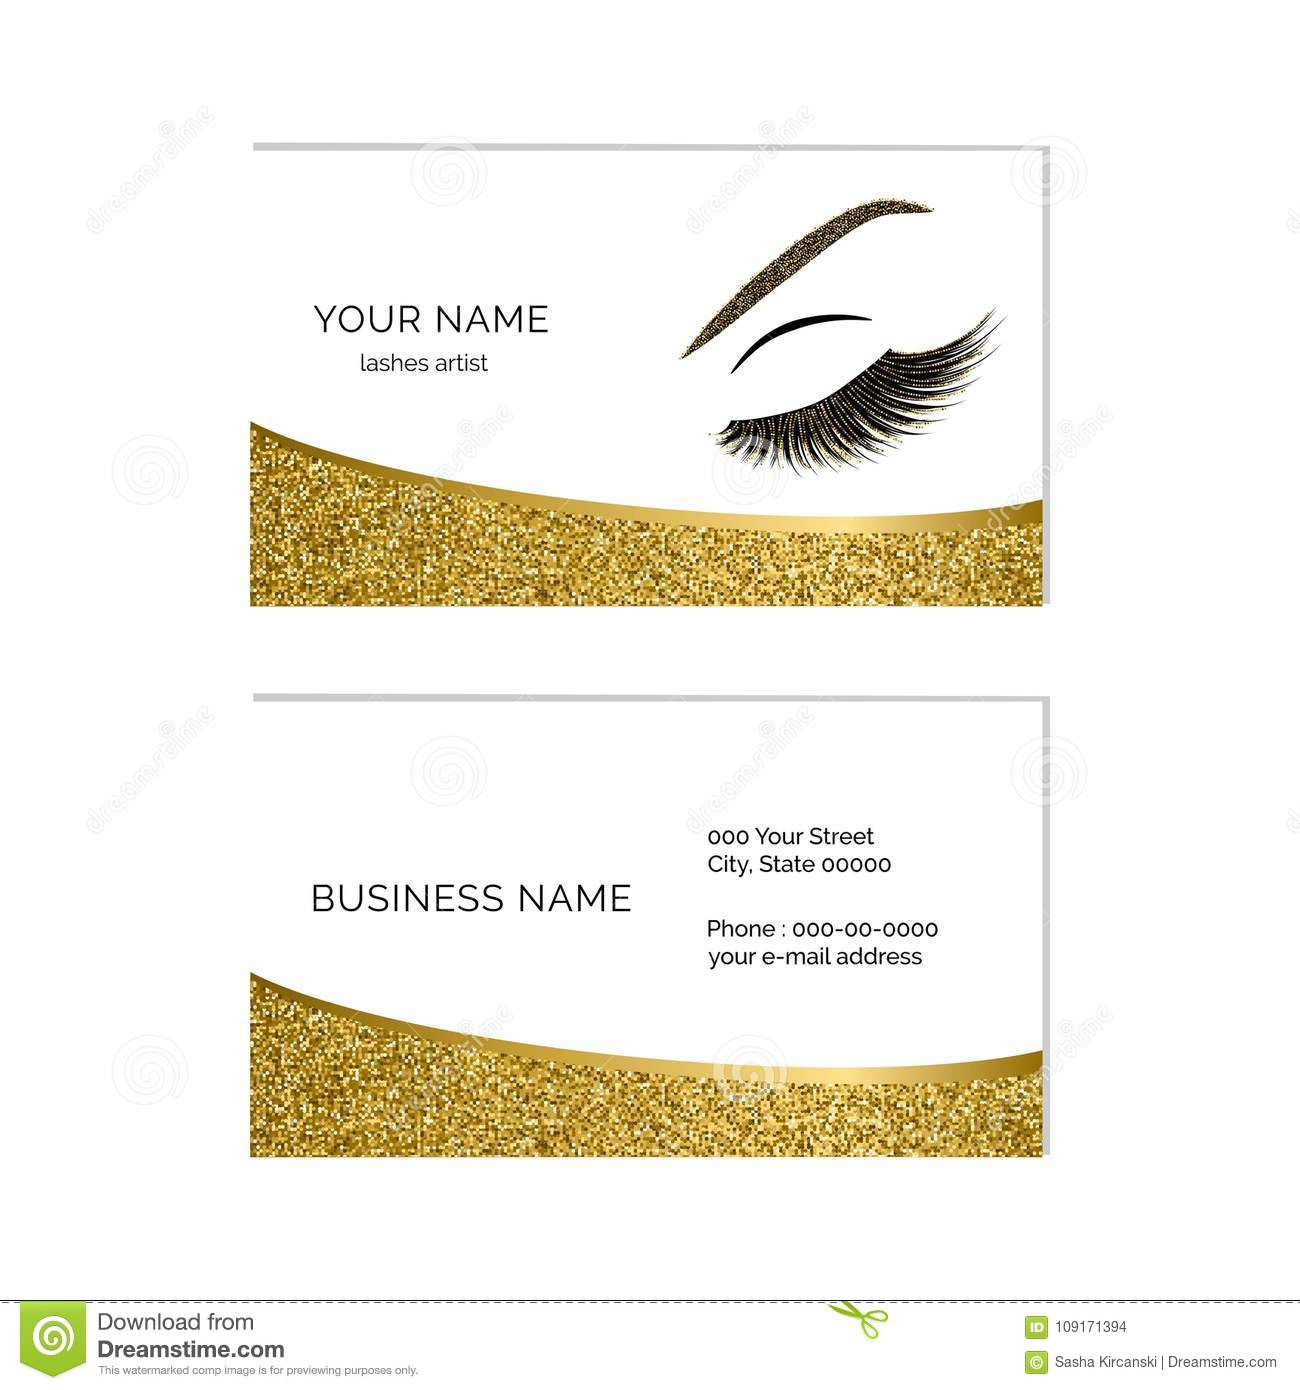 Makeup artist business card vector template stock vector makeup artist business card vector template wajeb Image collections